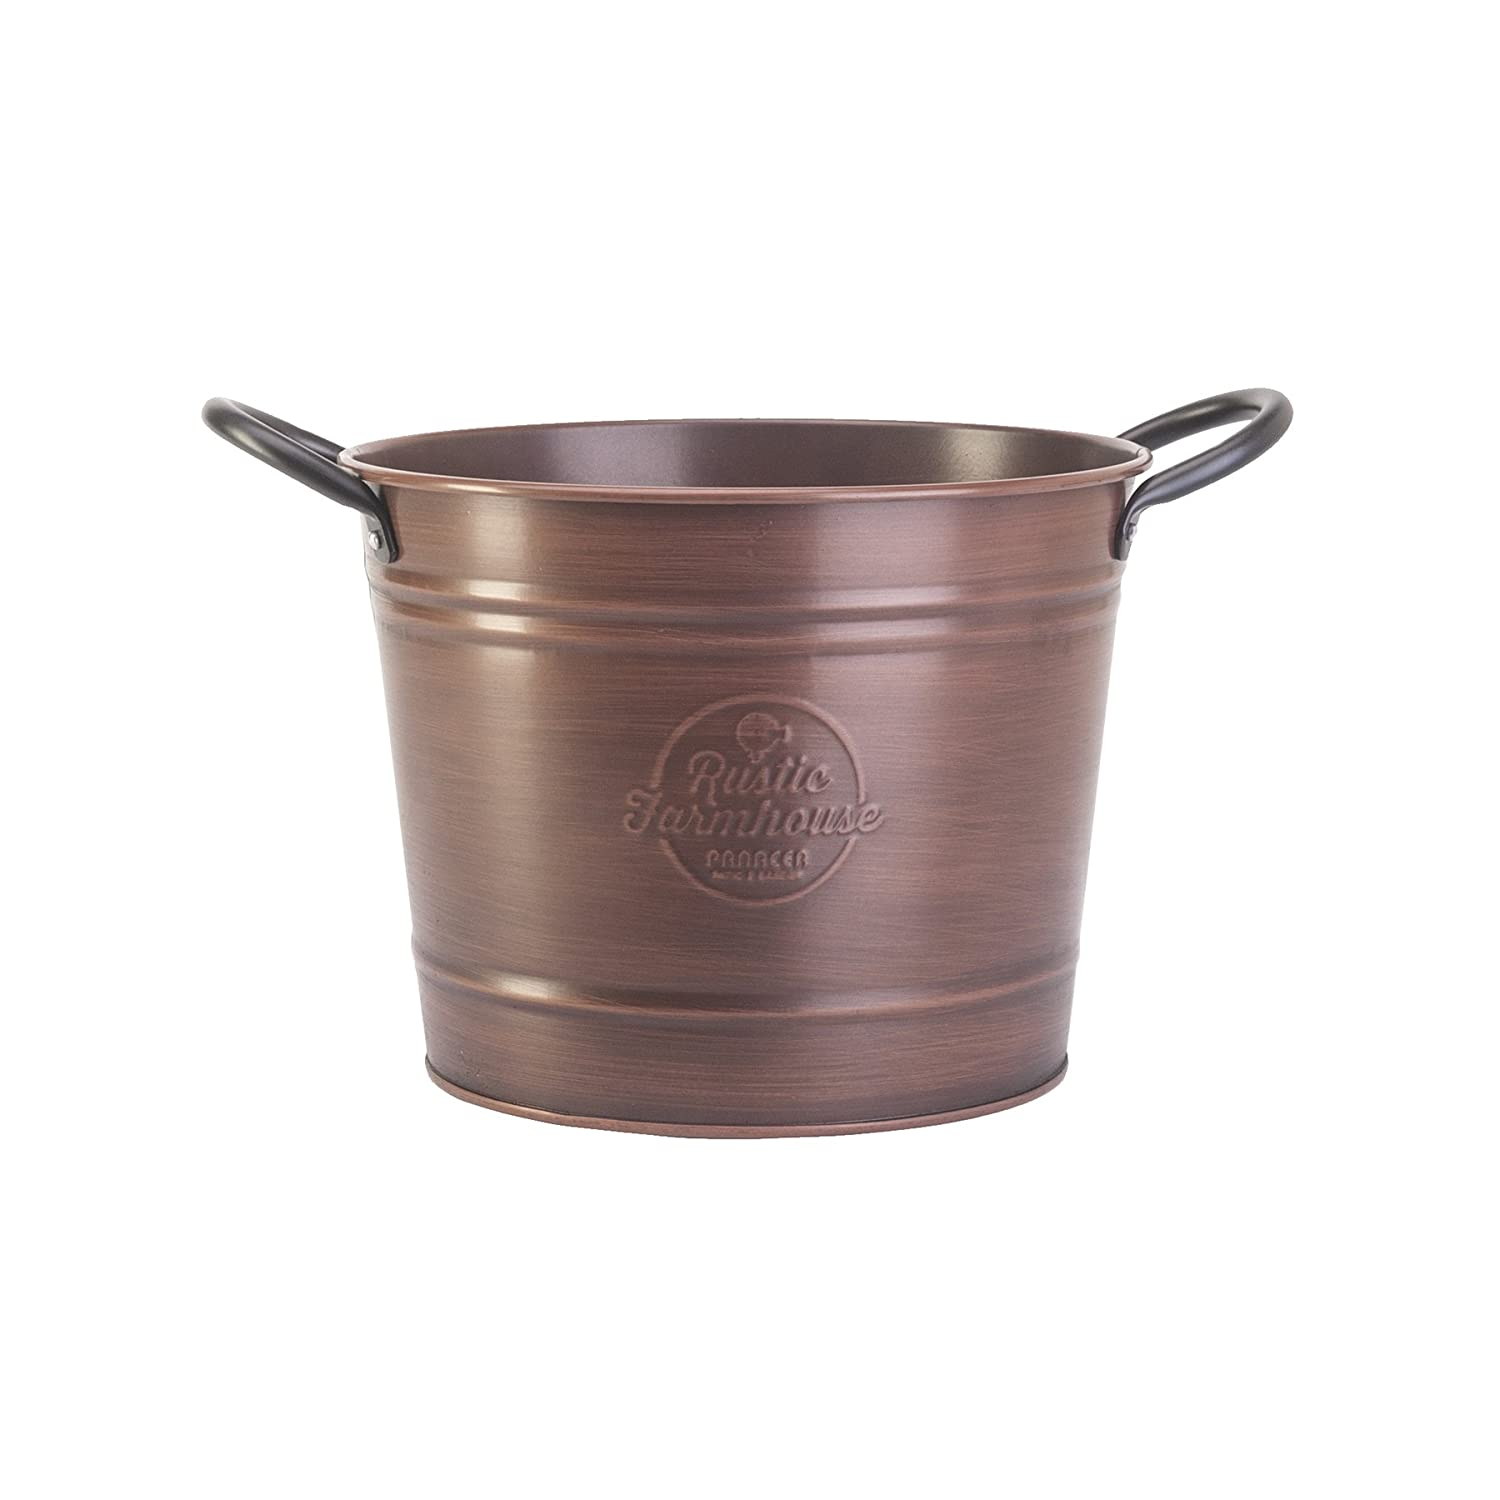 8 Washtub Planter, Copper Colored Finish